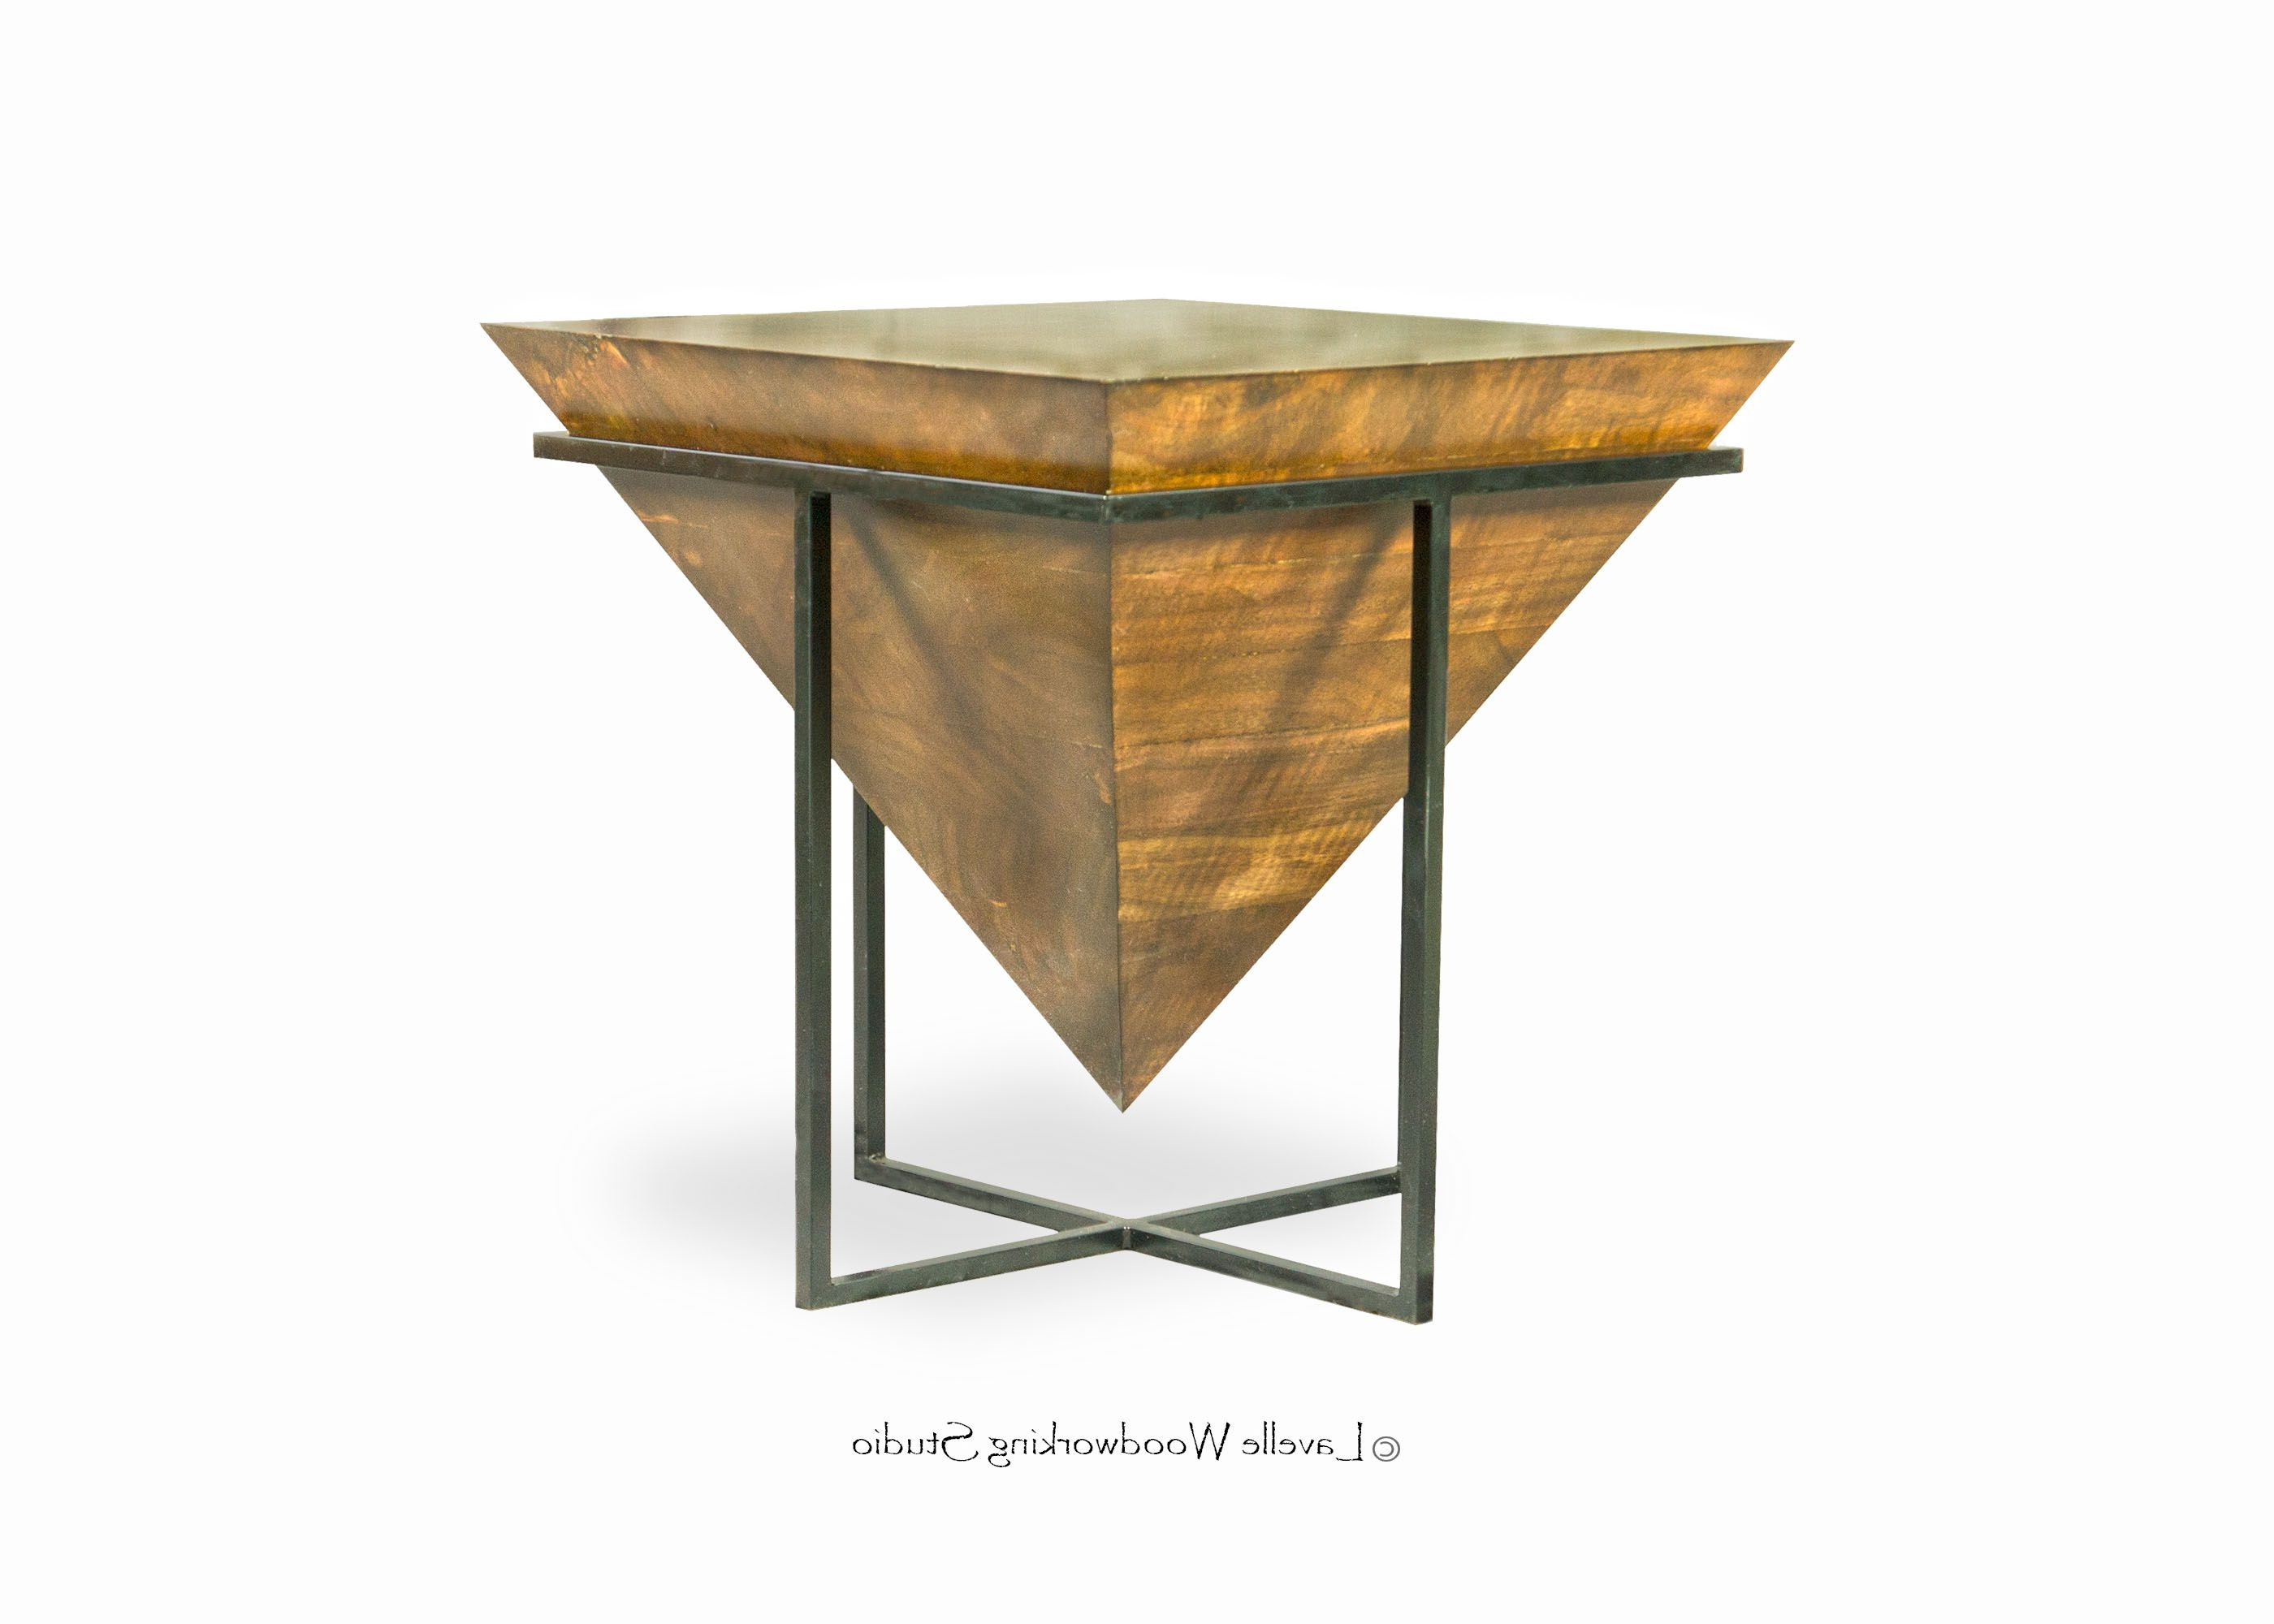 Hand Made Mara Table Inverted Wood Pyramid With Metal Base In Recent Inverted Triangle Coffee Tables (Gallery 7 of 20)